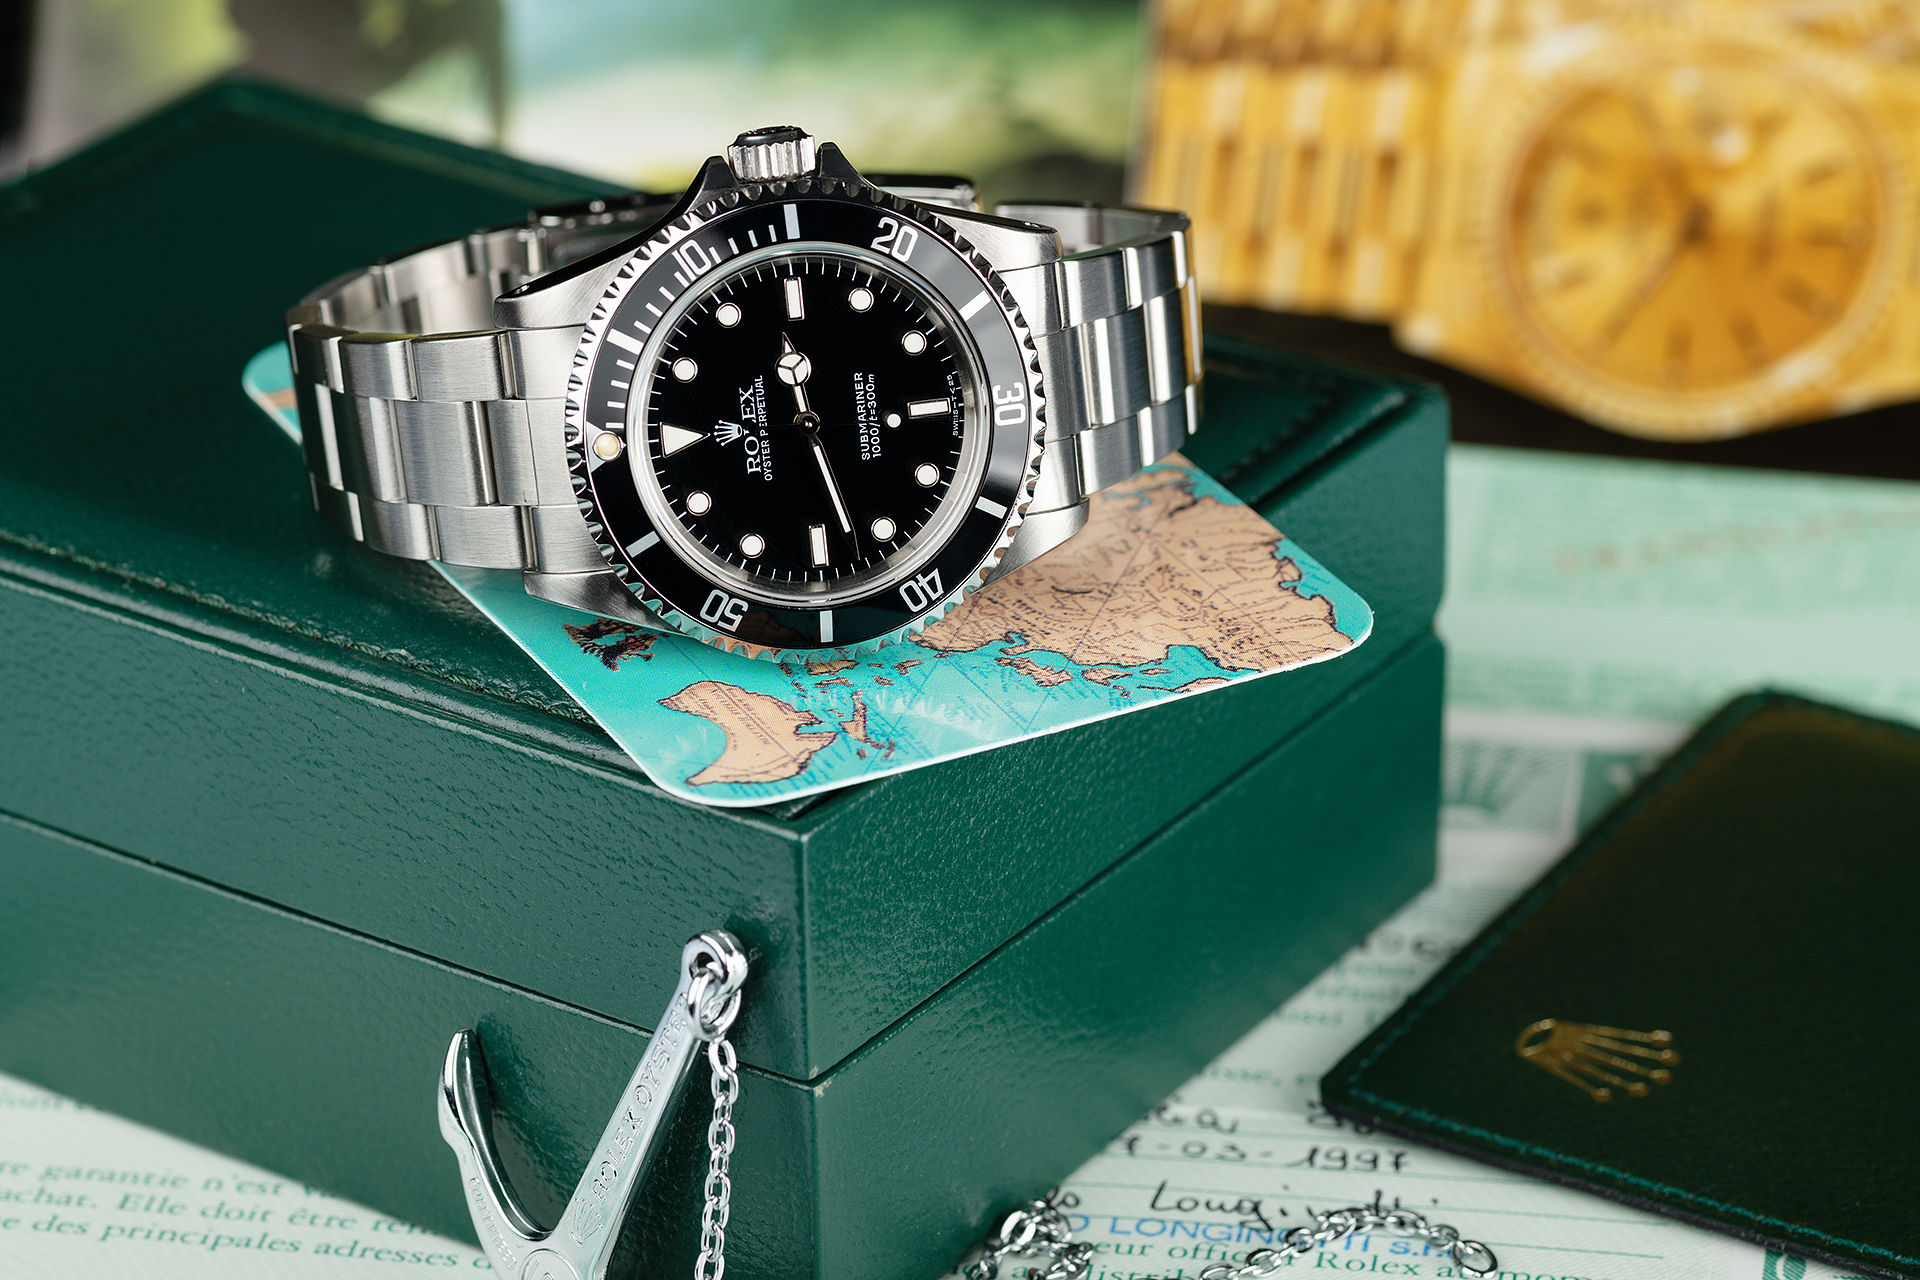 ref 14060 | 'Anodised Bezel' Classic Model  | Rolex Submariner